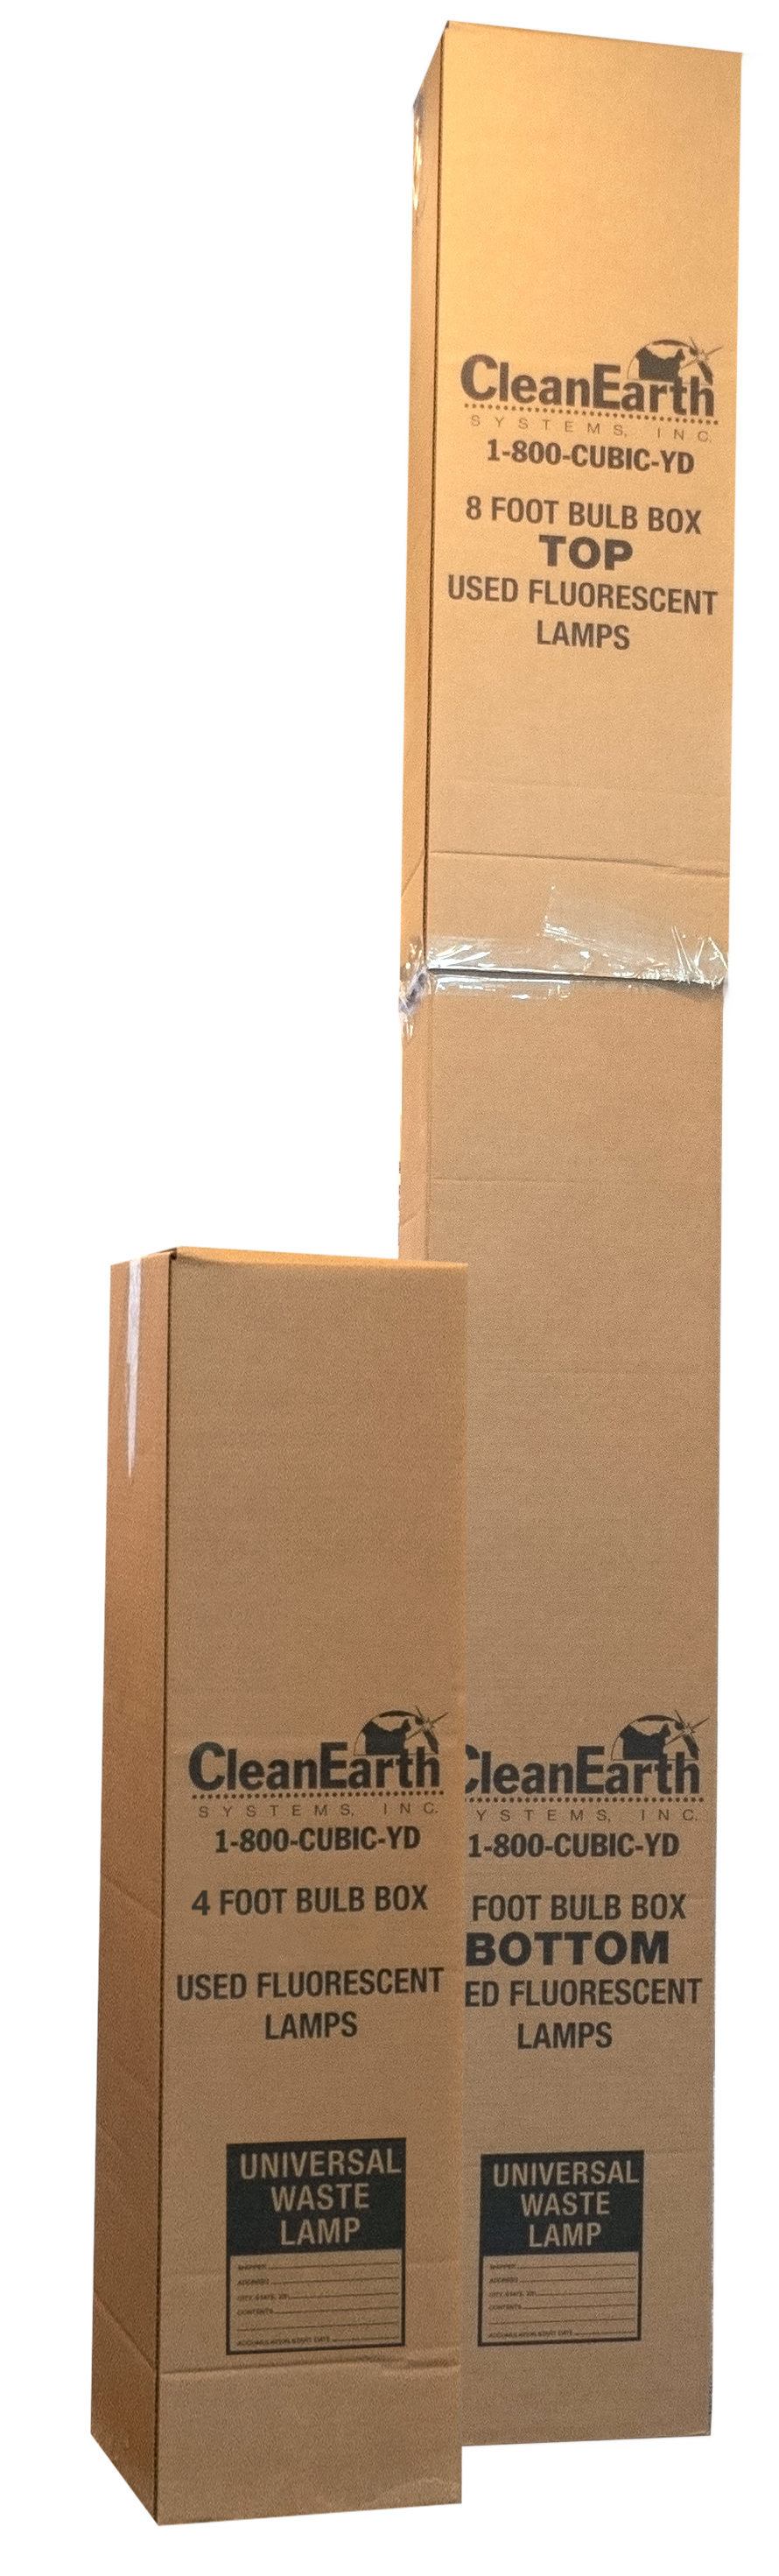 boxes for fluorescent lamps